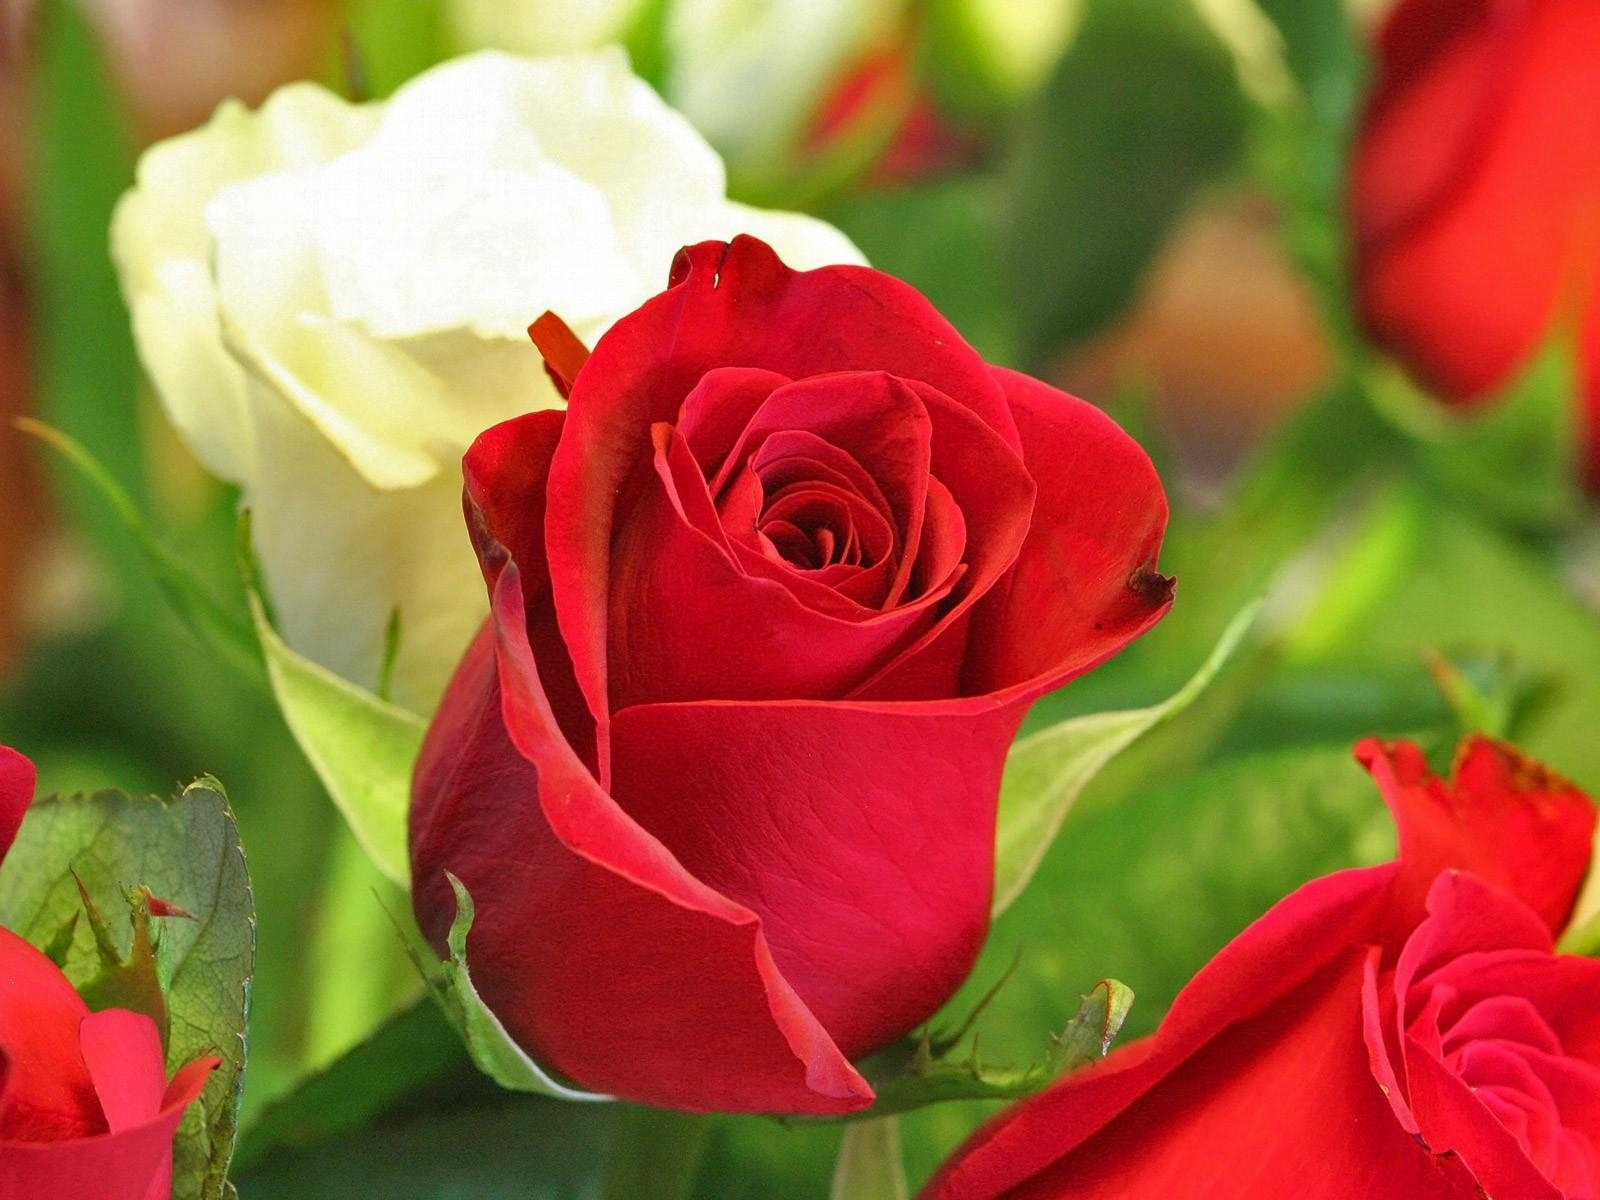 rose flower images free download hd download